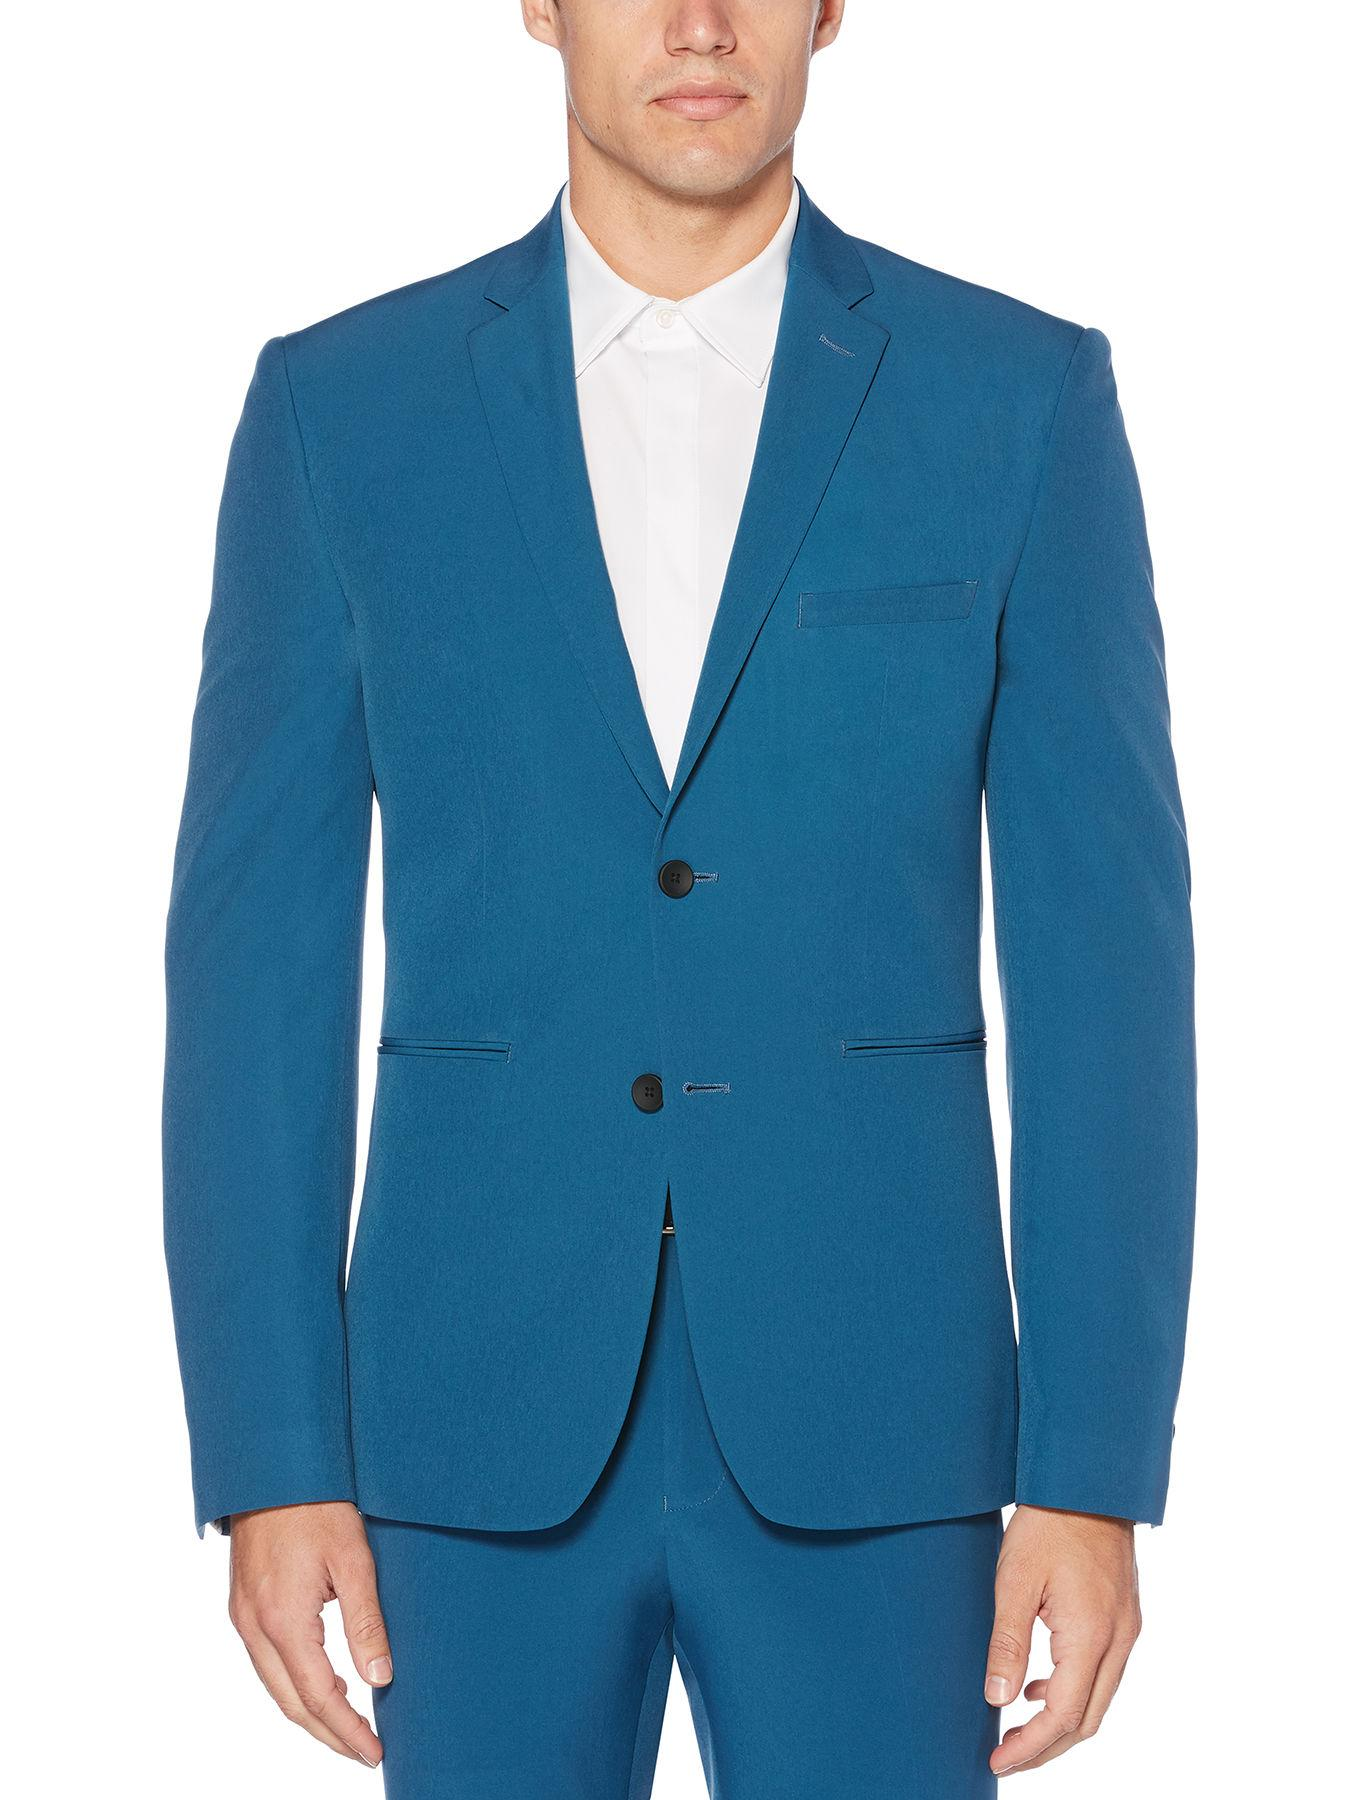 21c54967db Lyst - Perry Ellis Very Slim Fit Washable Turquoise Tech Suit Jacket ...